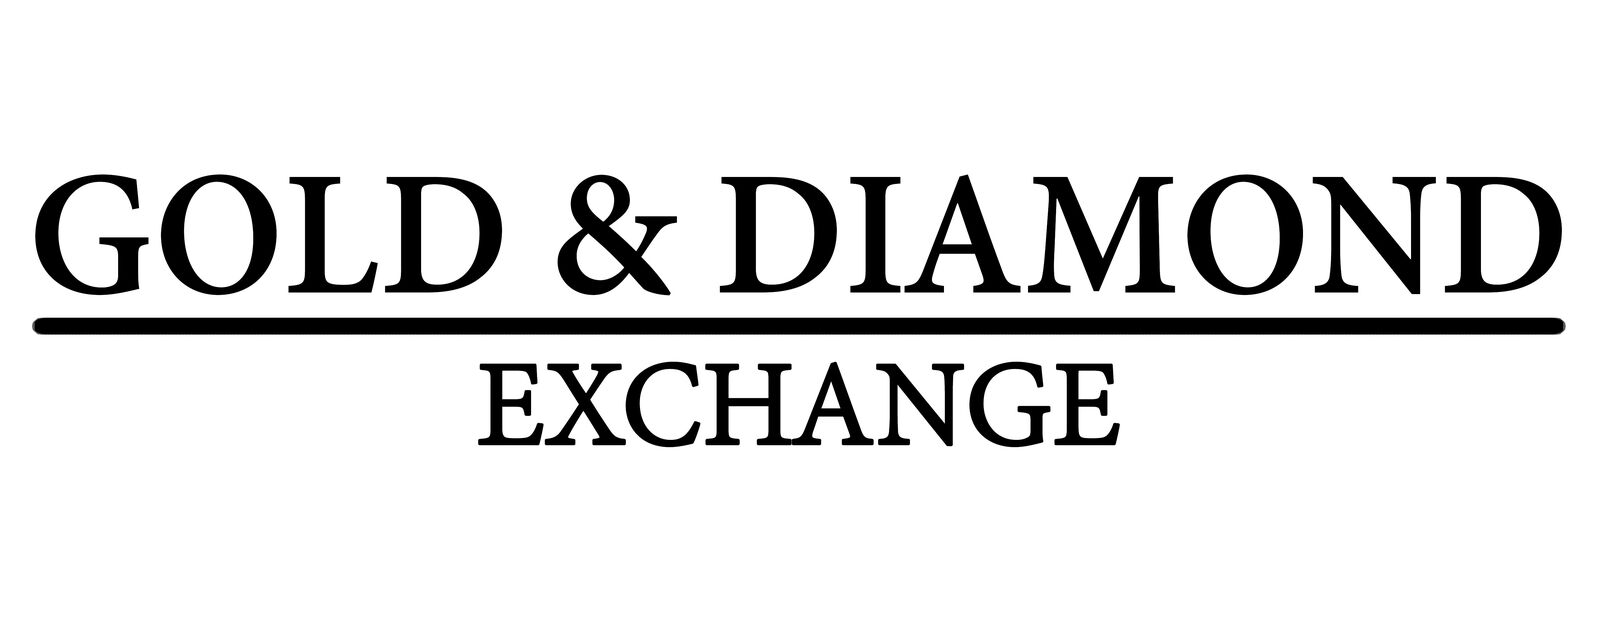 Gold & Diamond Exchange